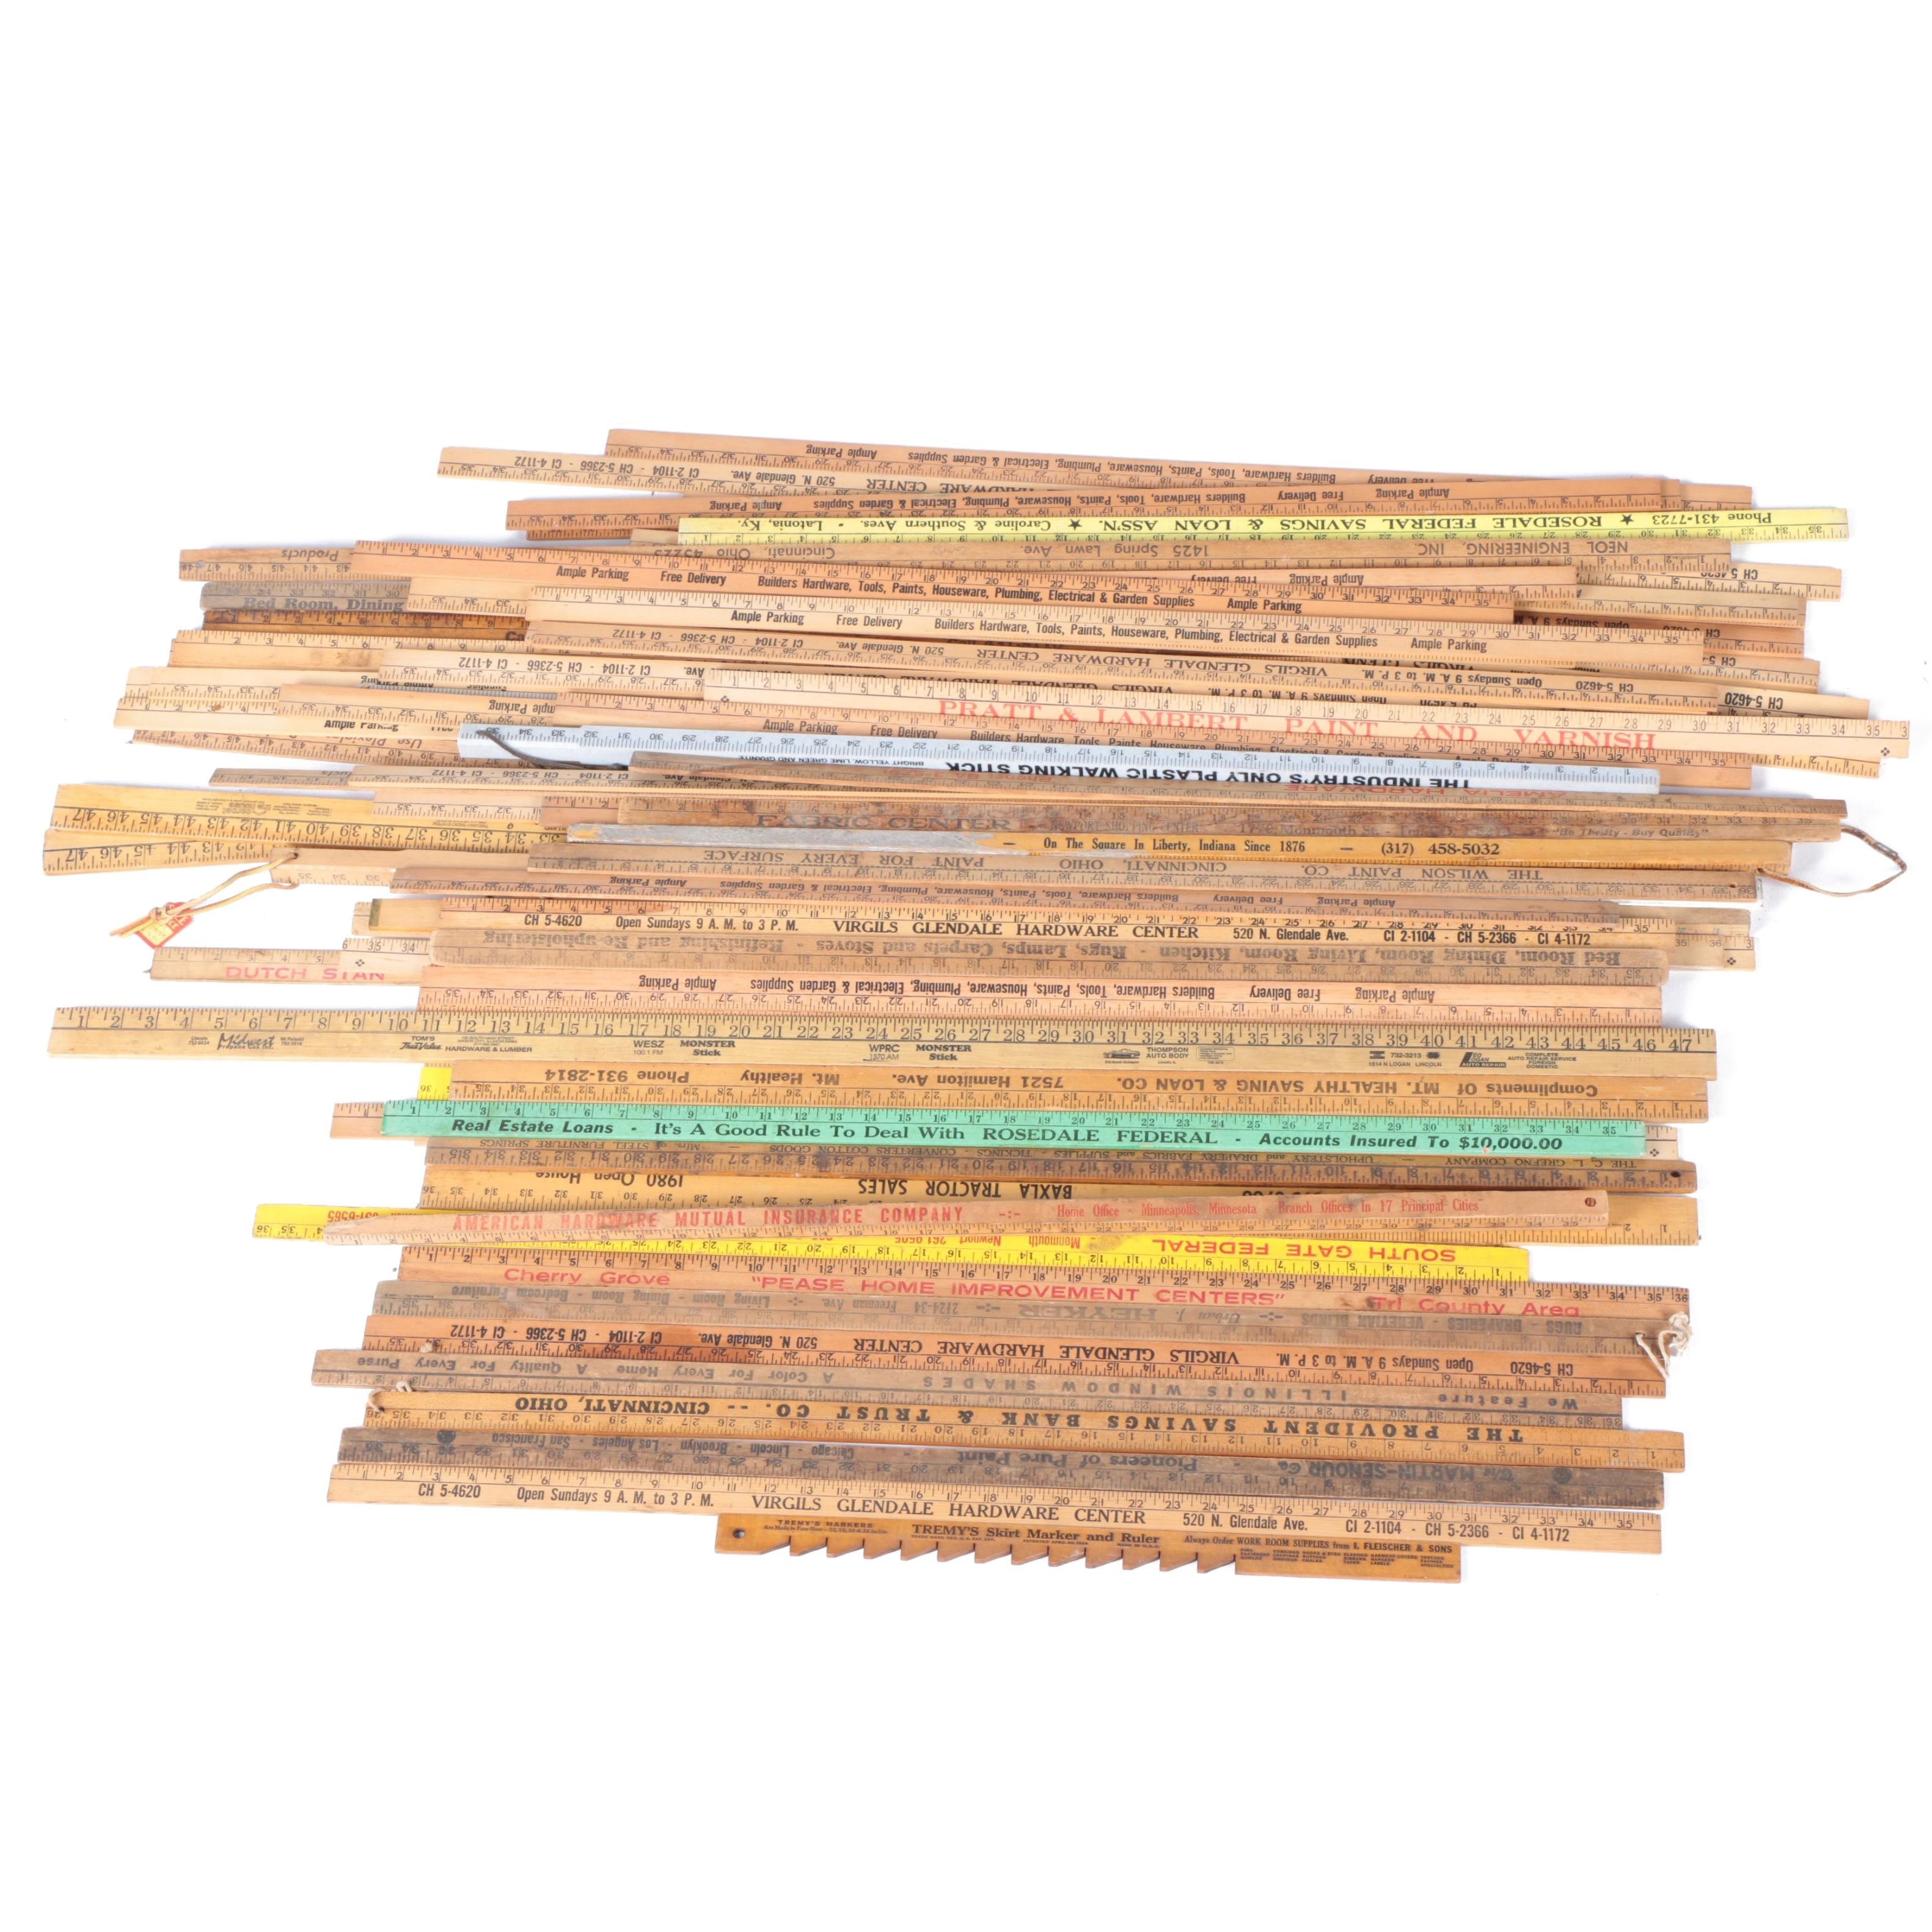 Promotional Yardsticks and Rulers